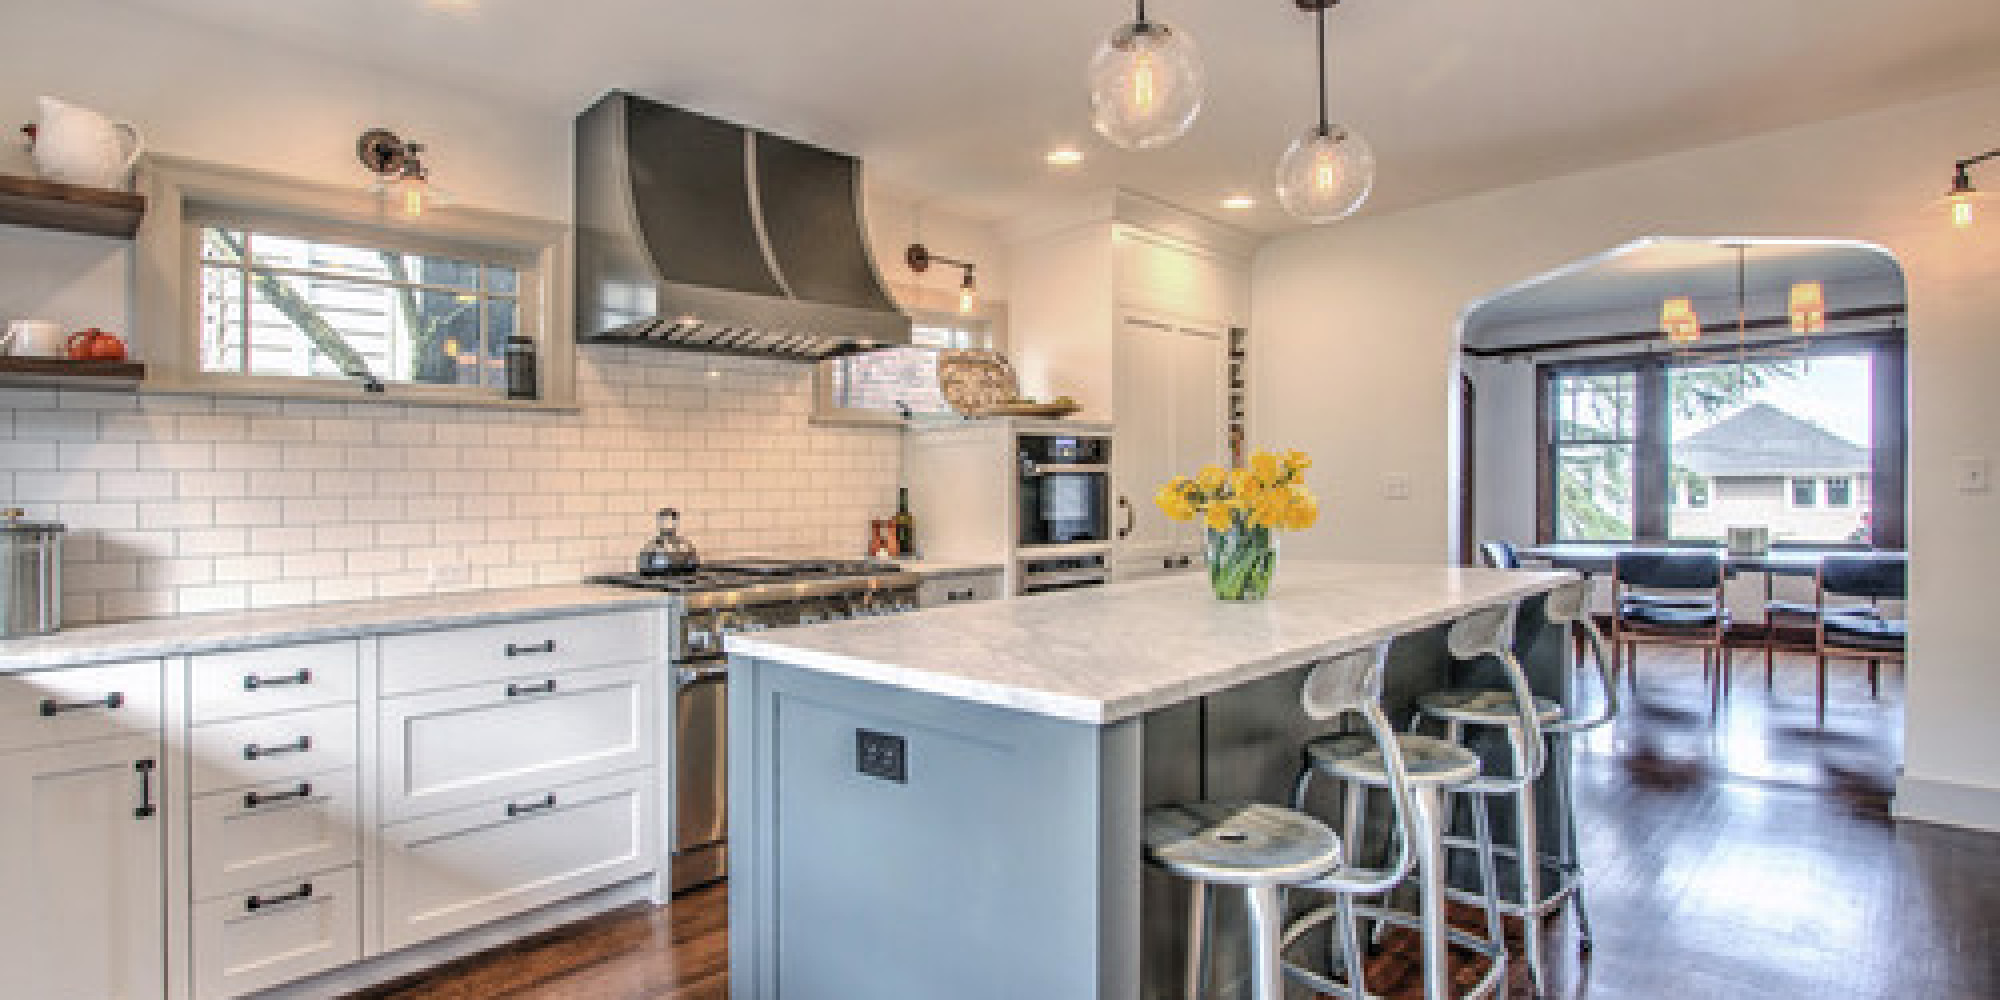 Before and after seattle kitchen gets a bright makeover - Seattle kitchen appliances ...